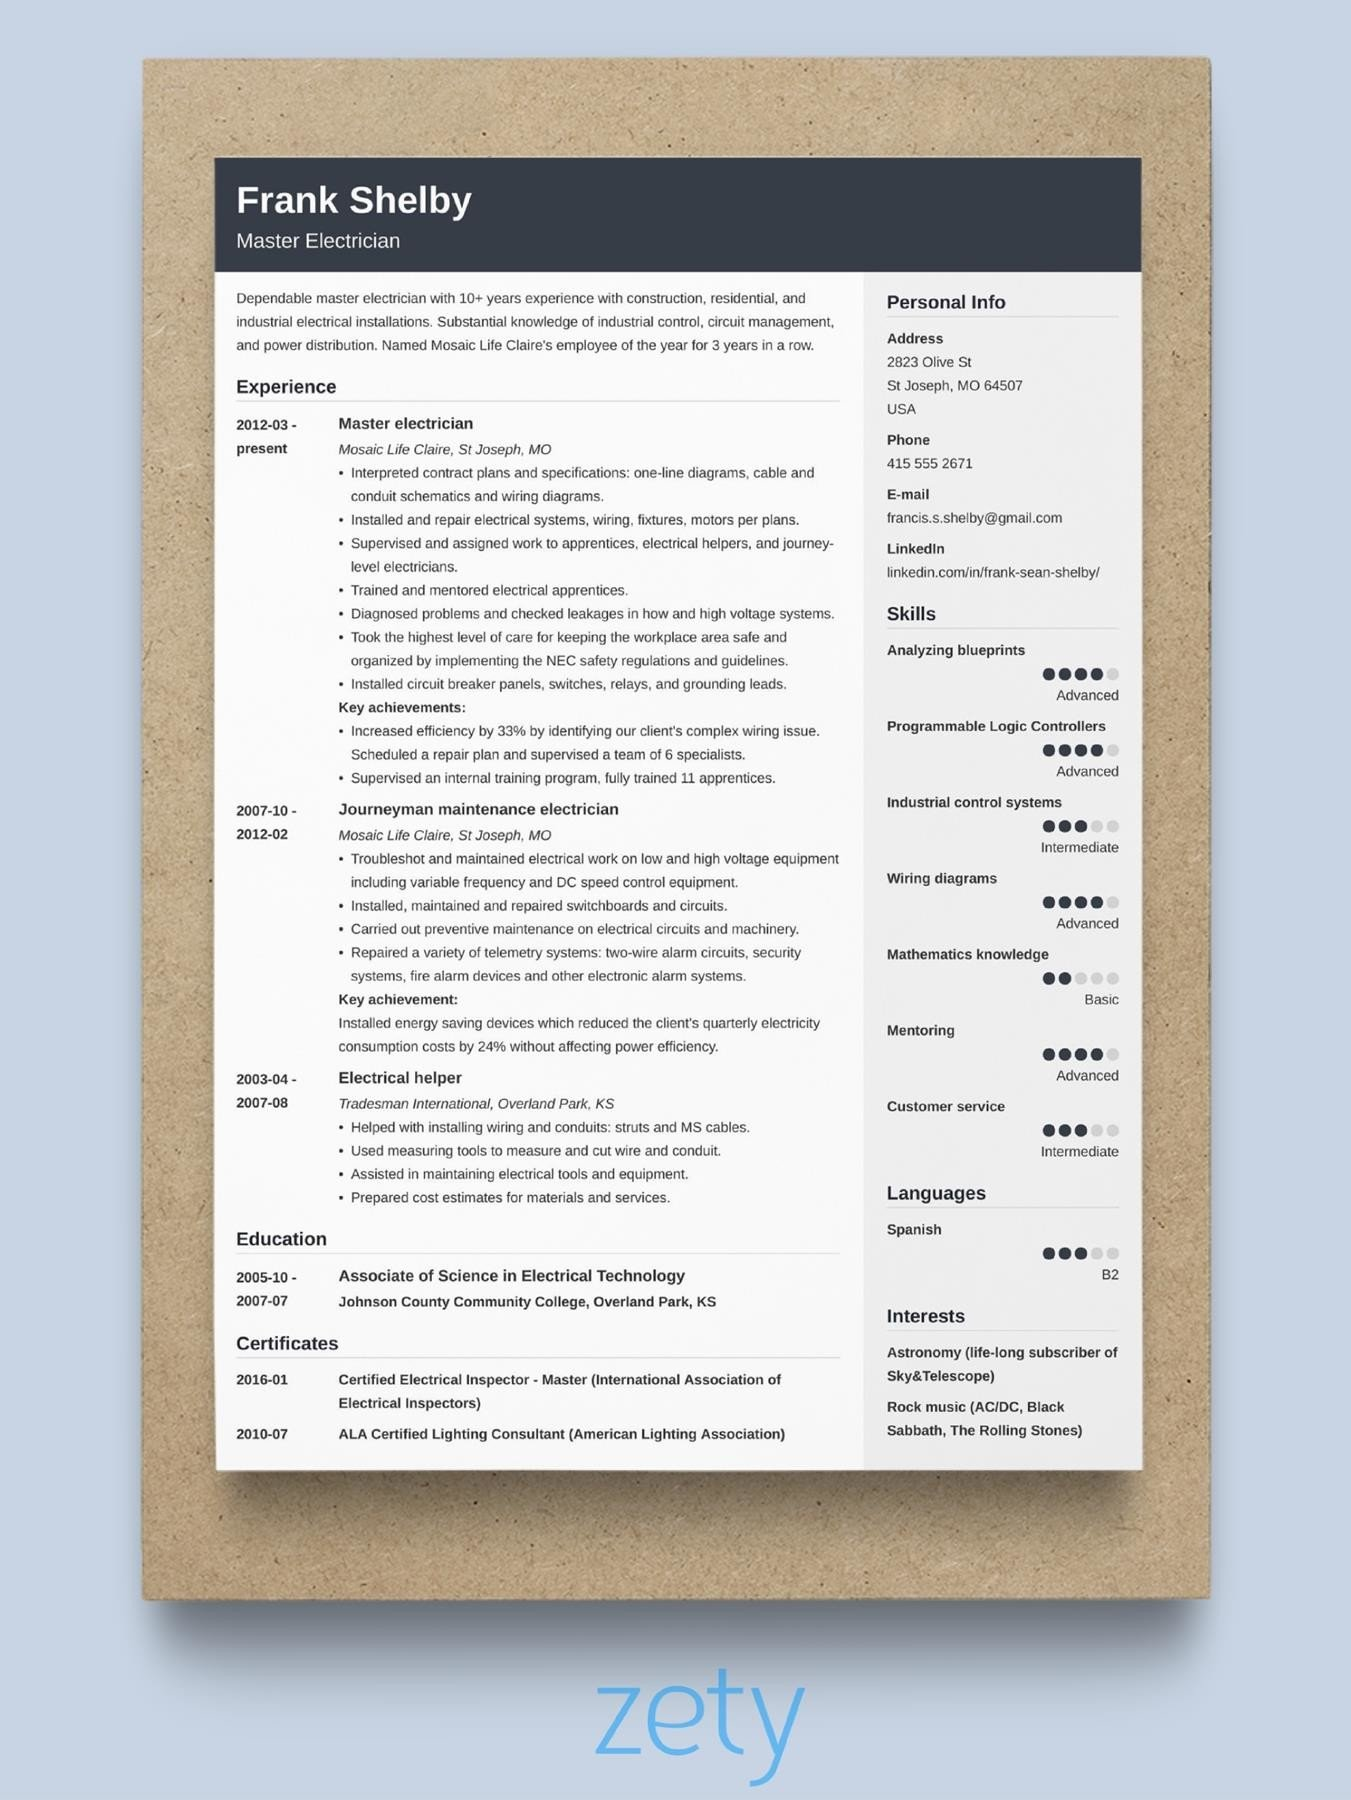 resume styles  pick the best resume style for your needs